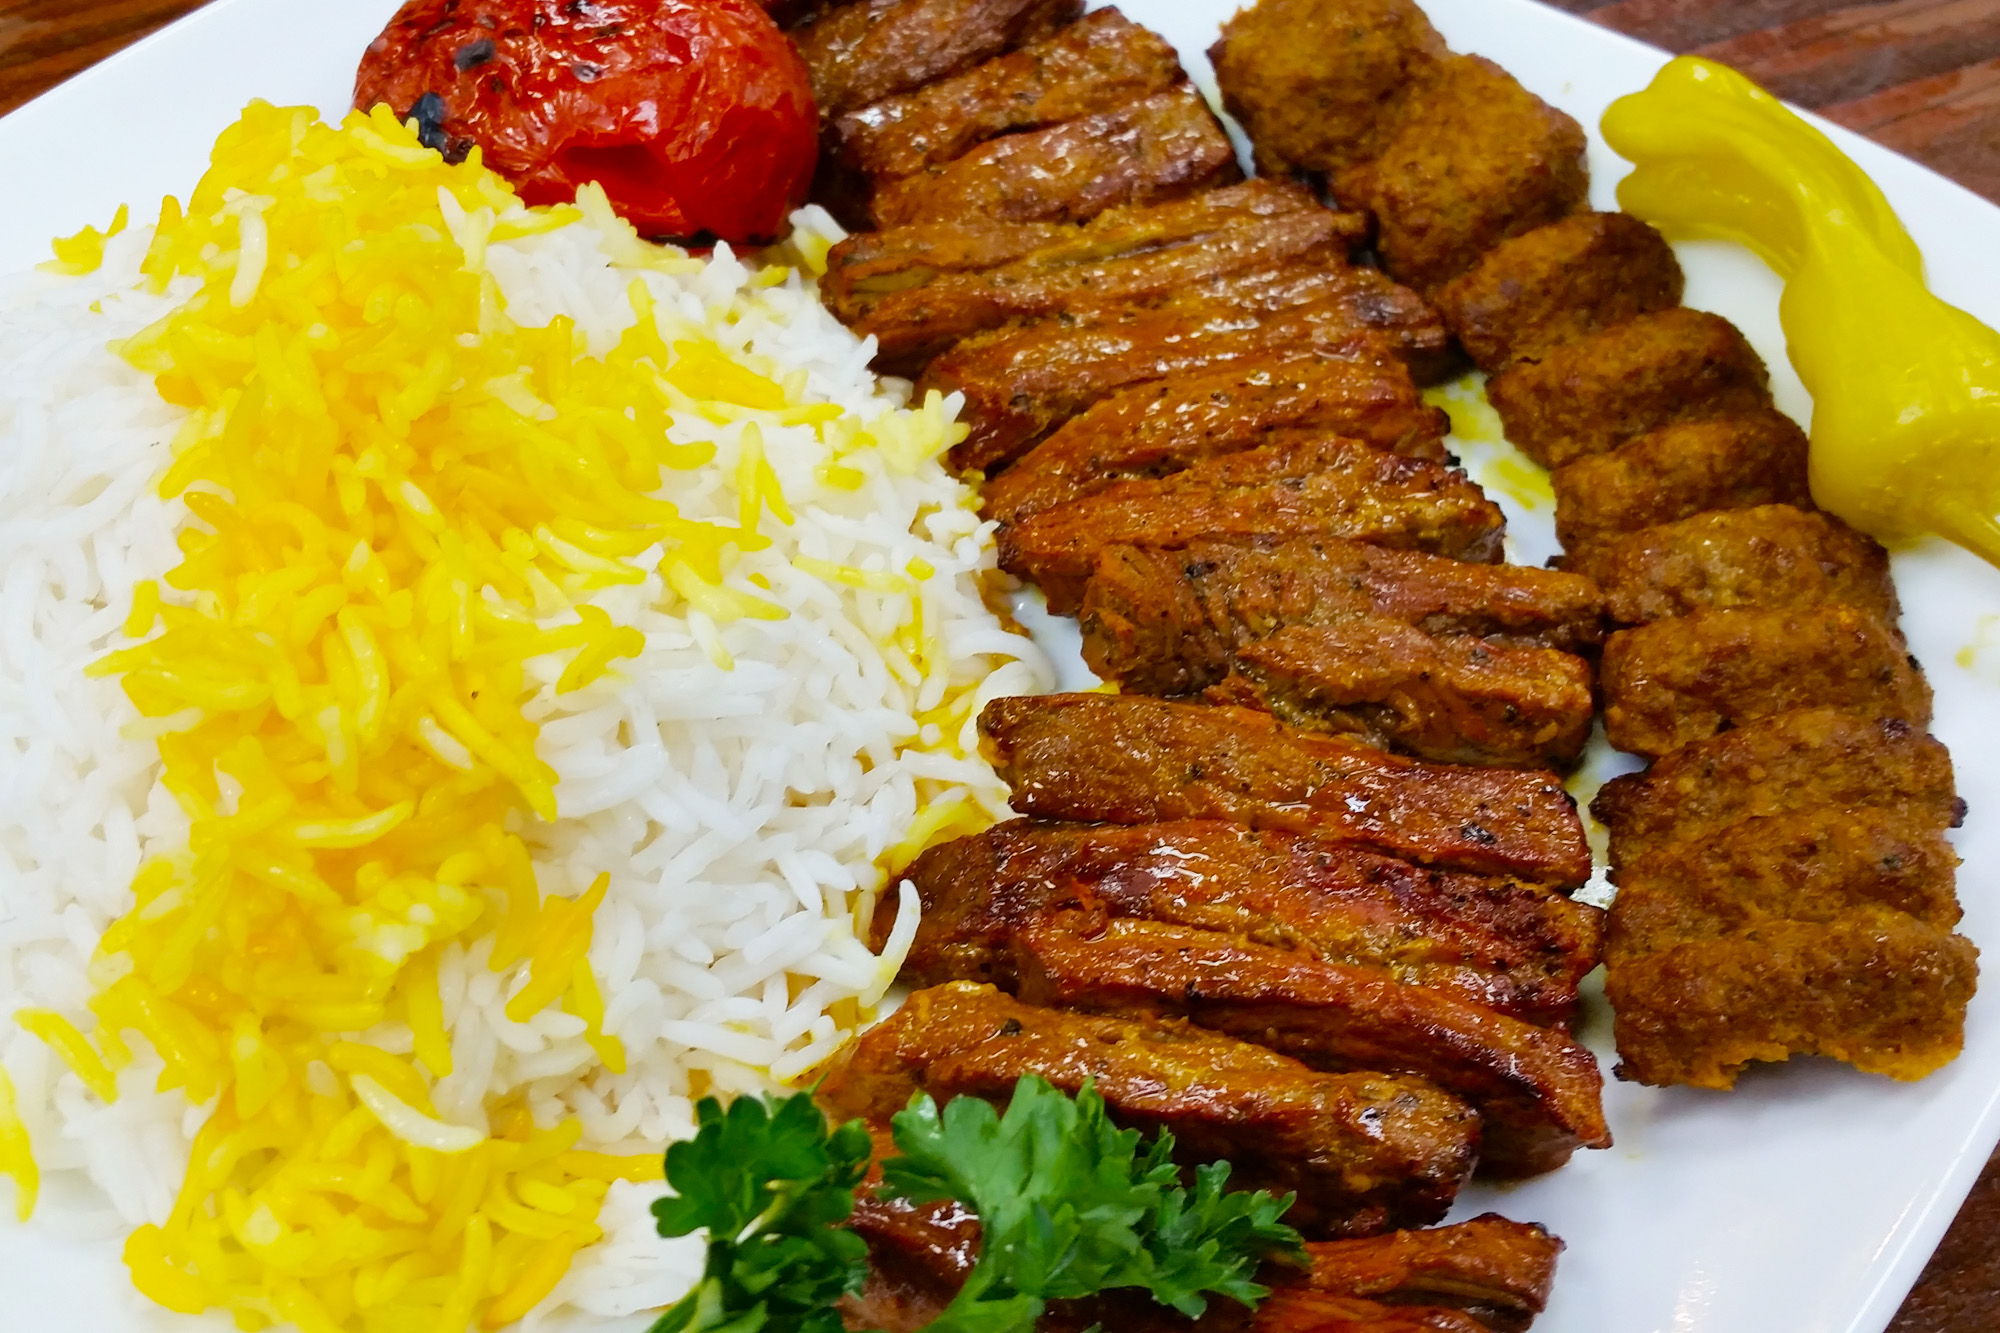 Soltani Kebab = One skewer of steak and one skewer of ground beef served with basmati rice and grilled tomatoes at Sahel Persian Restaurant